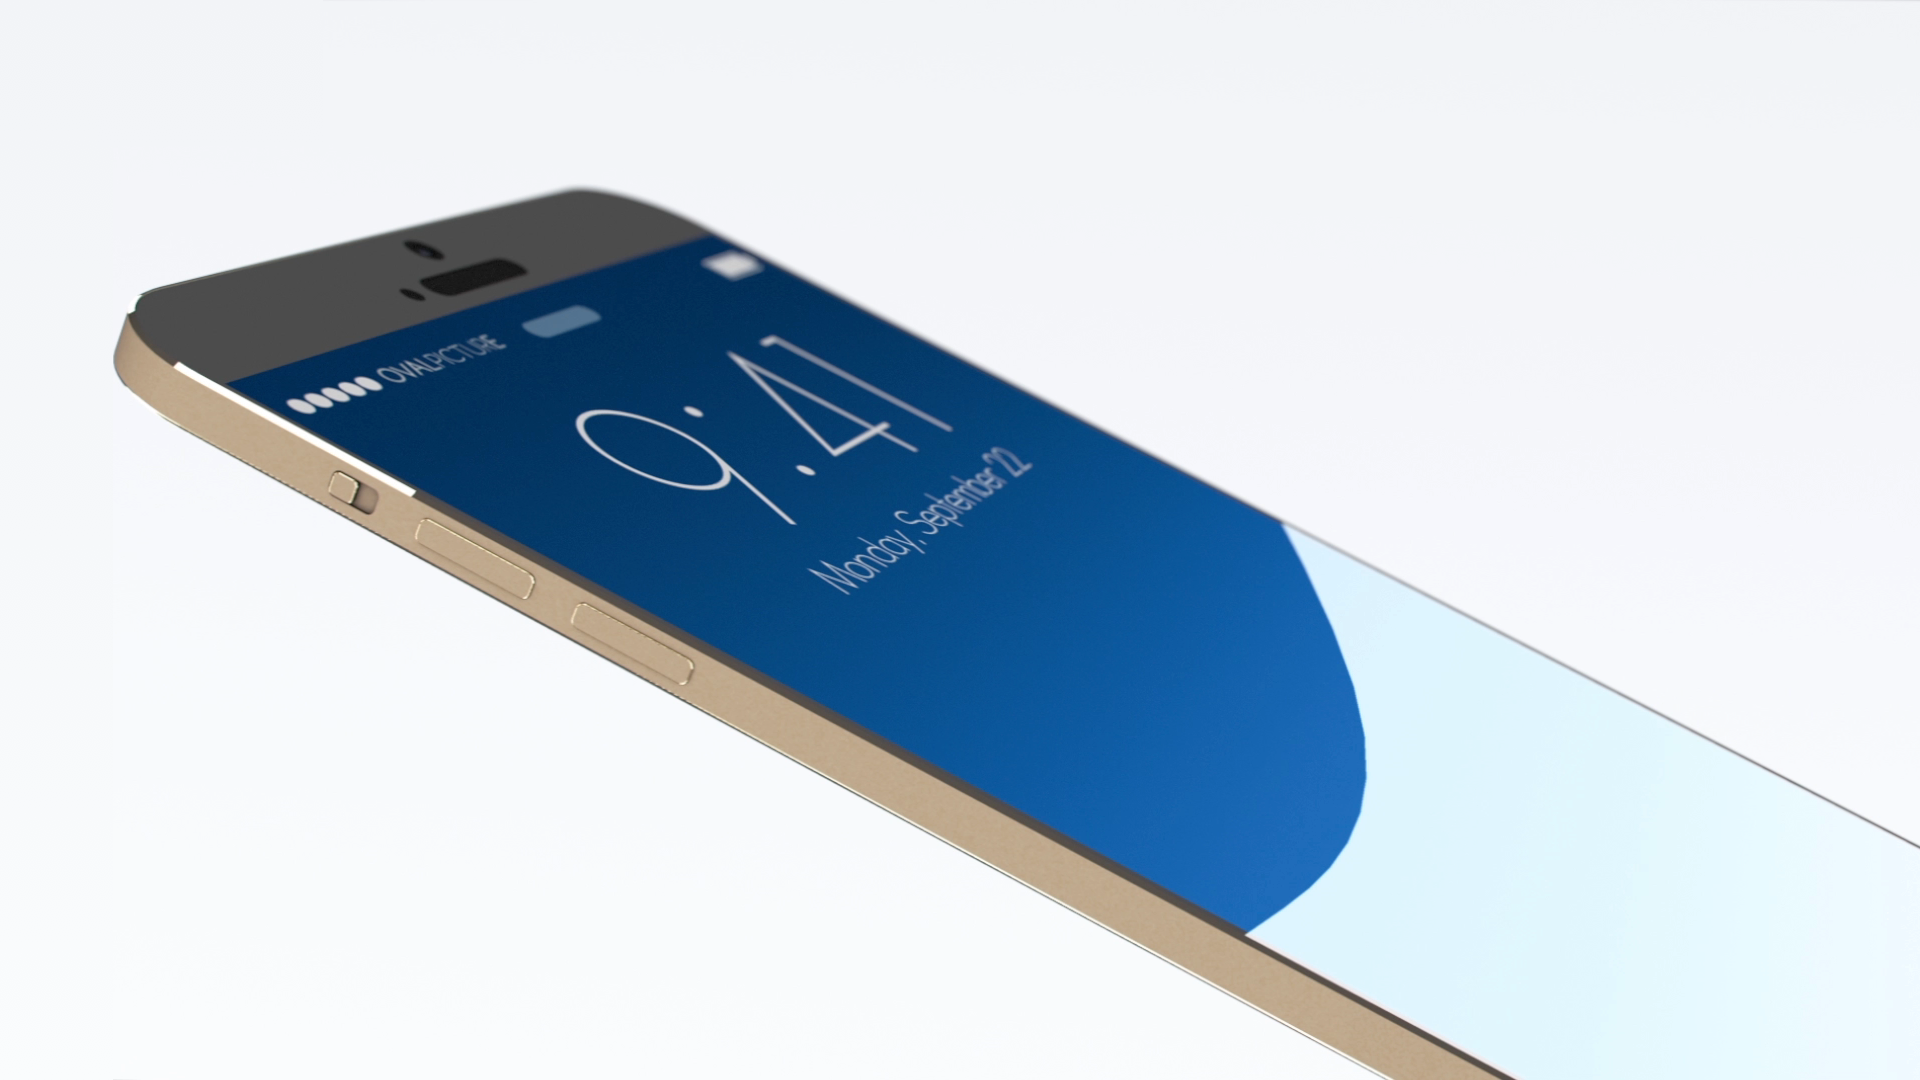 Apple iPhone 6 : Le Crystal Sapphire Display, l'écran impossible à rayer